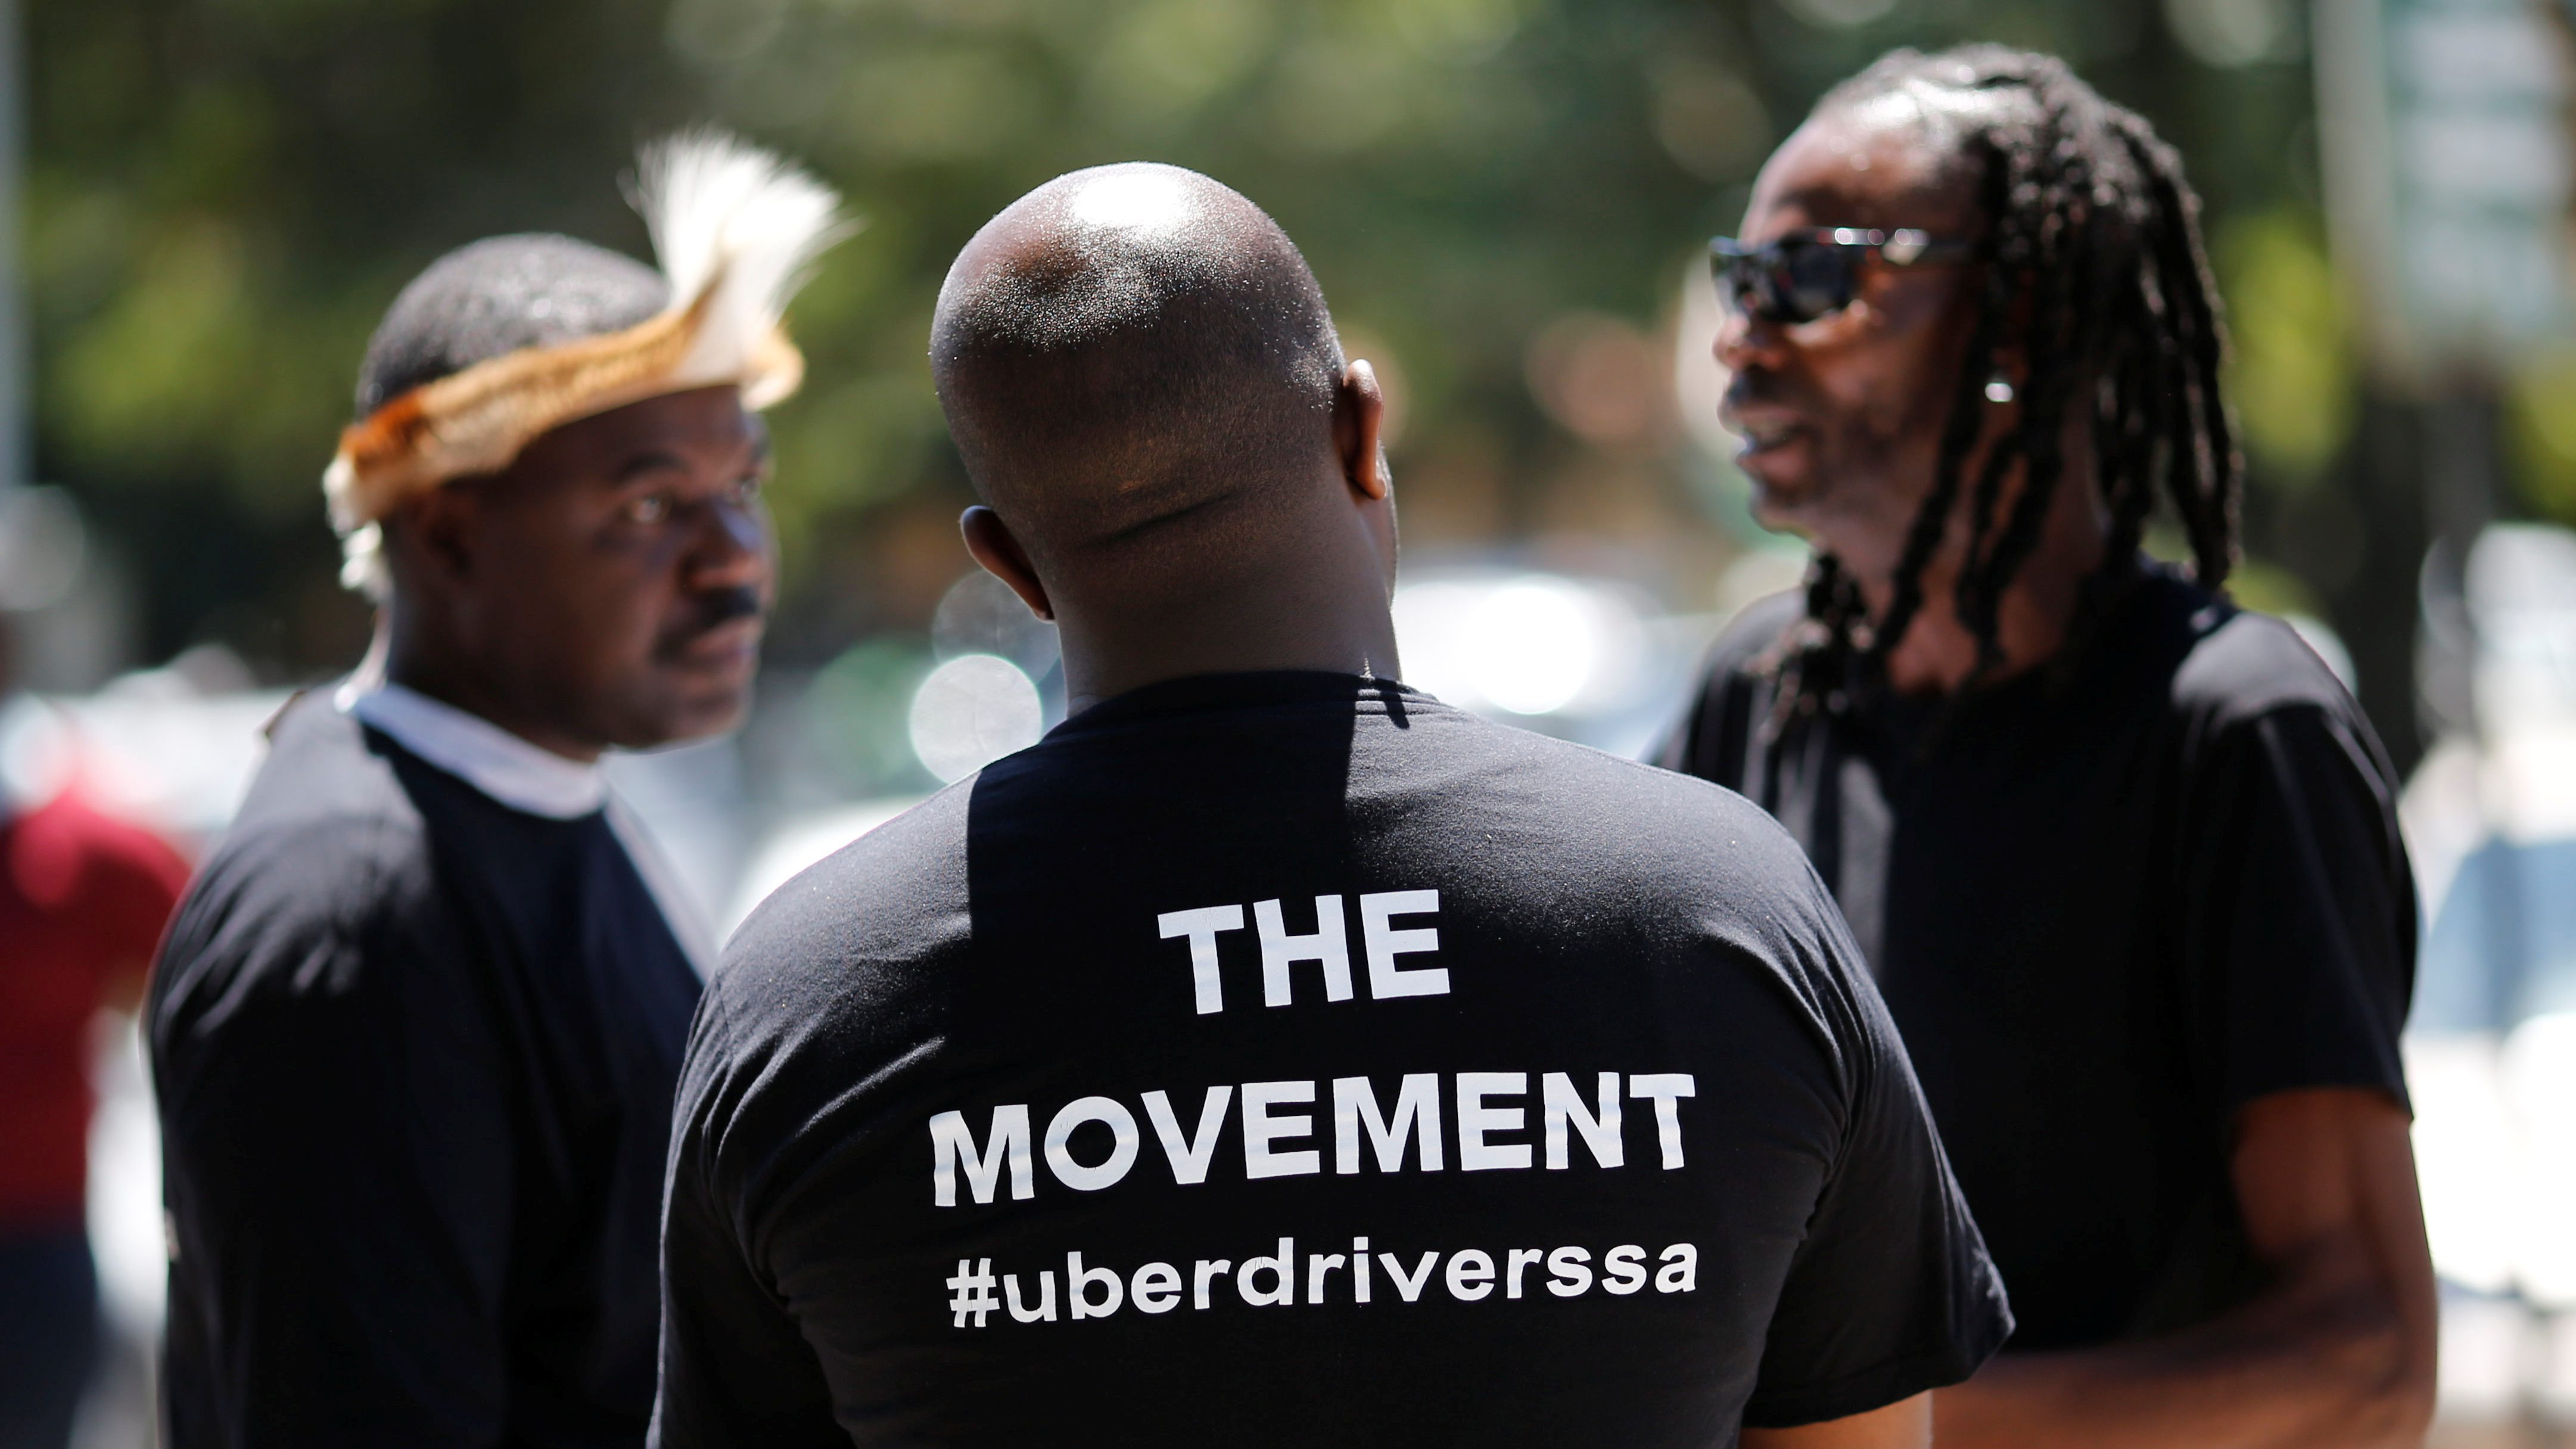 Uber drivers gather outside the company's offices in Parktown, a suburb of Johannesburg